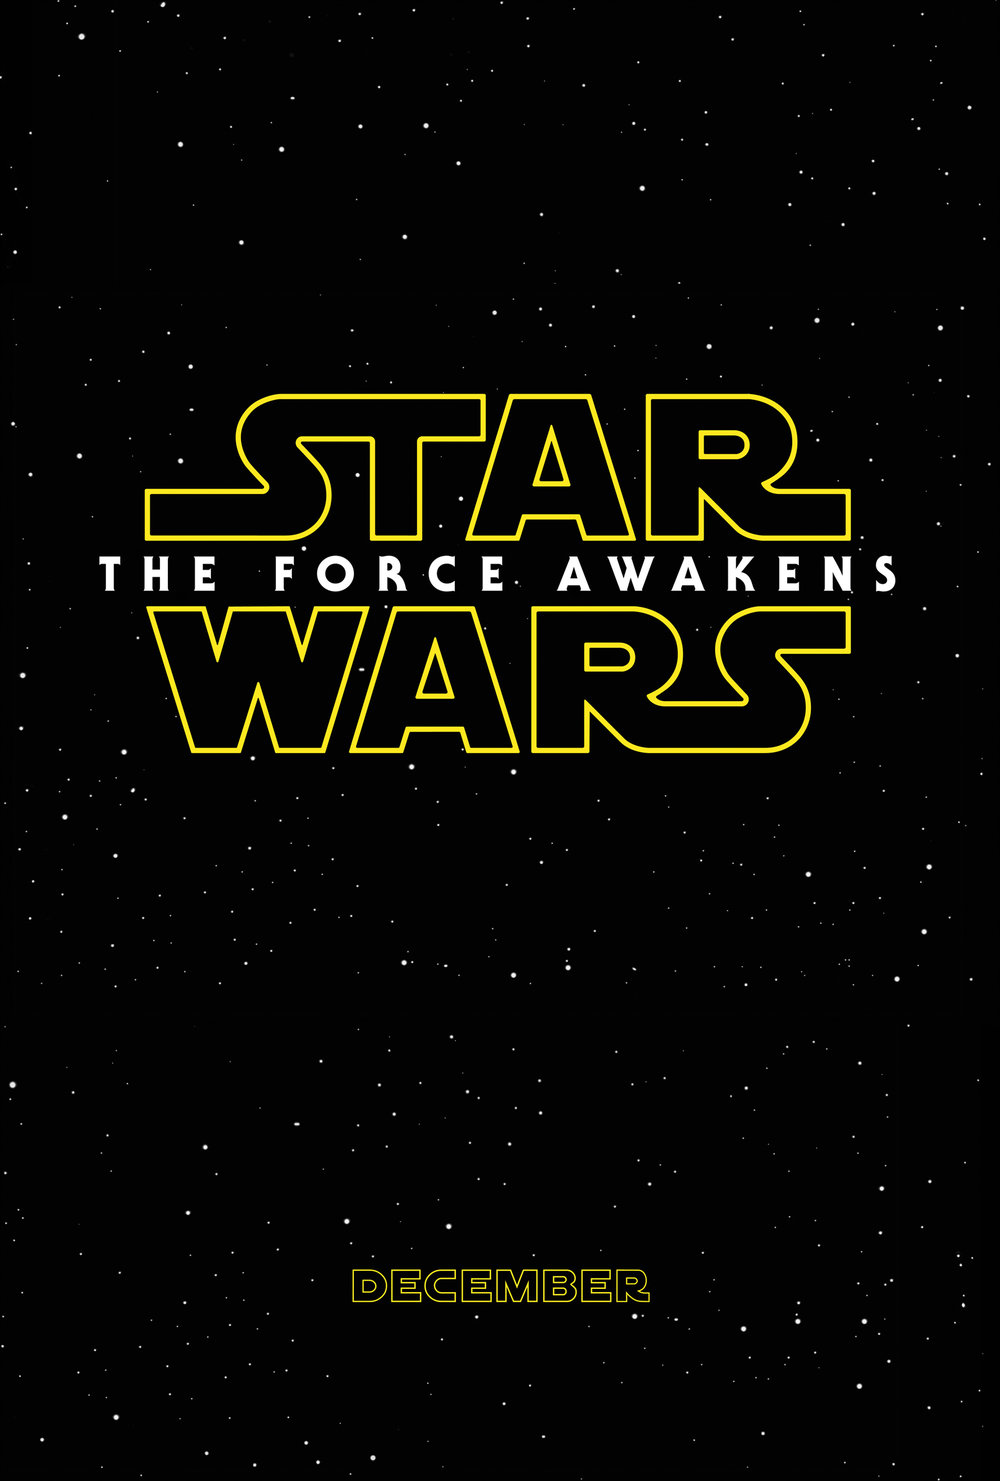 star-wars-the-force-awakens-teaser-poster1.jpg